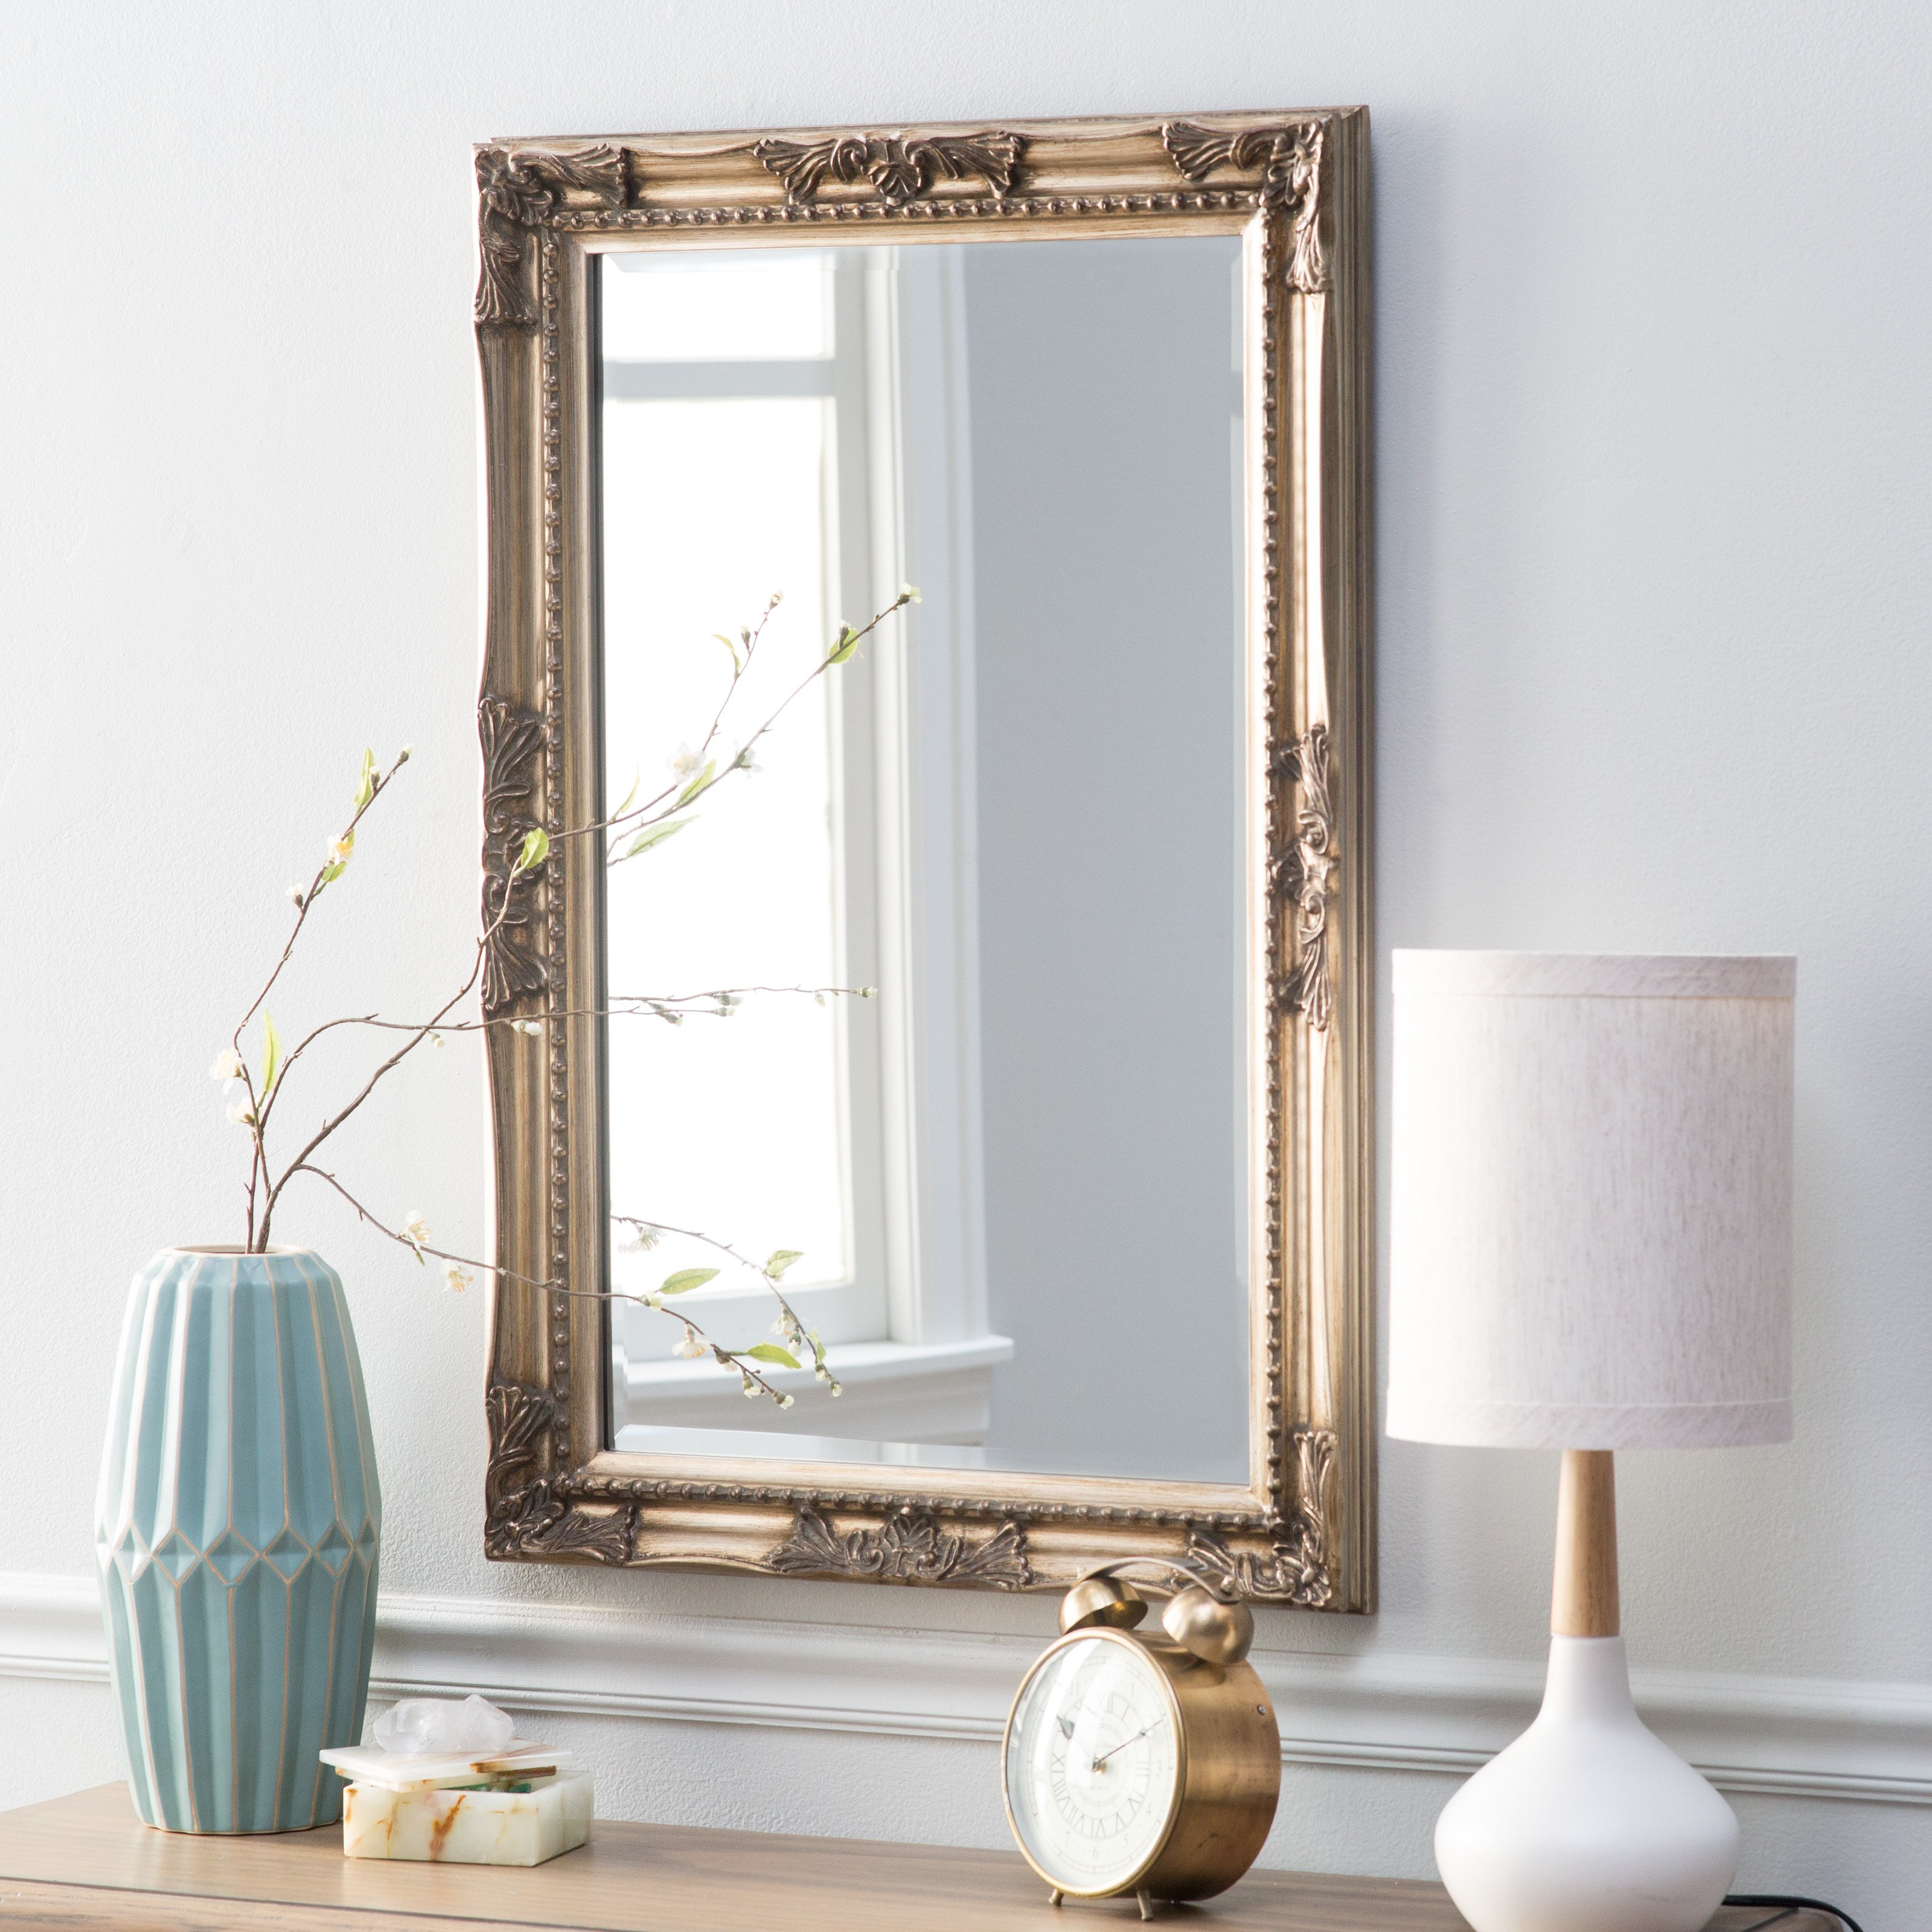 Elizabeth Austin Queen Anne Rectangle Wall Mirror with regard to Rectangle Ornate Geometric Wall Mirrors (Image 7 of 30)